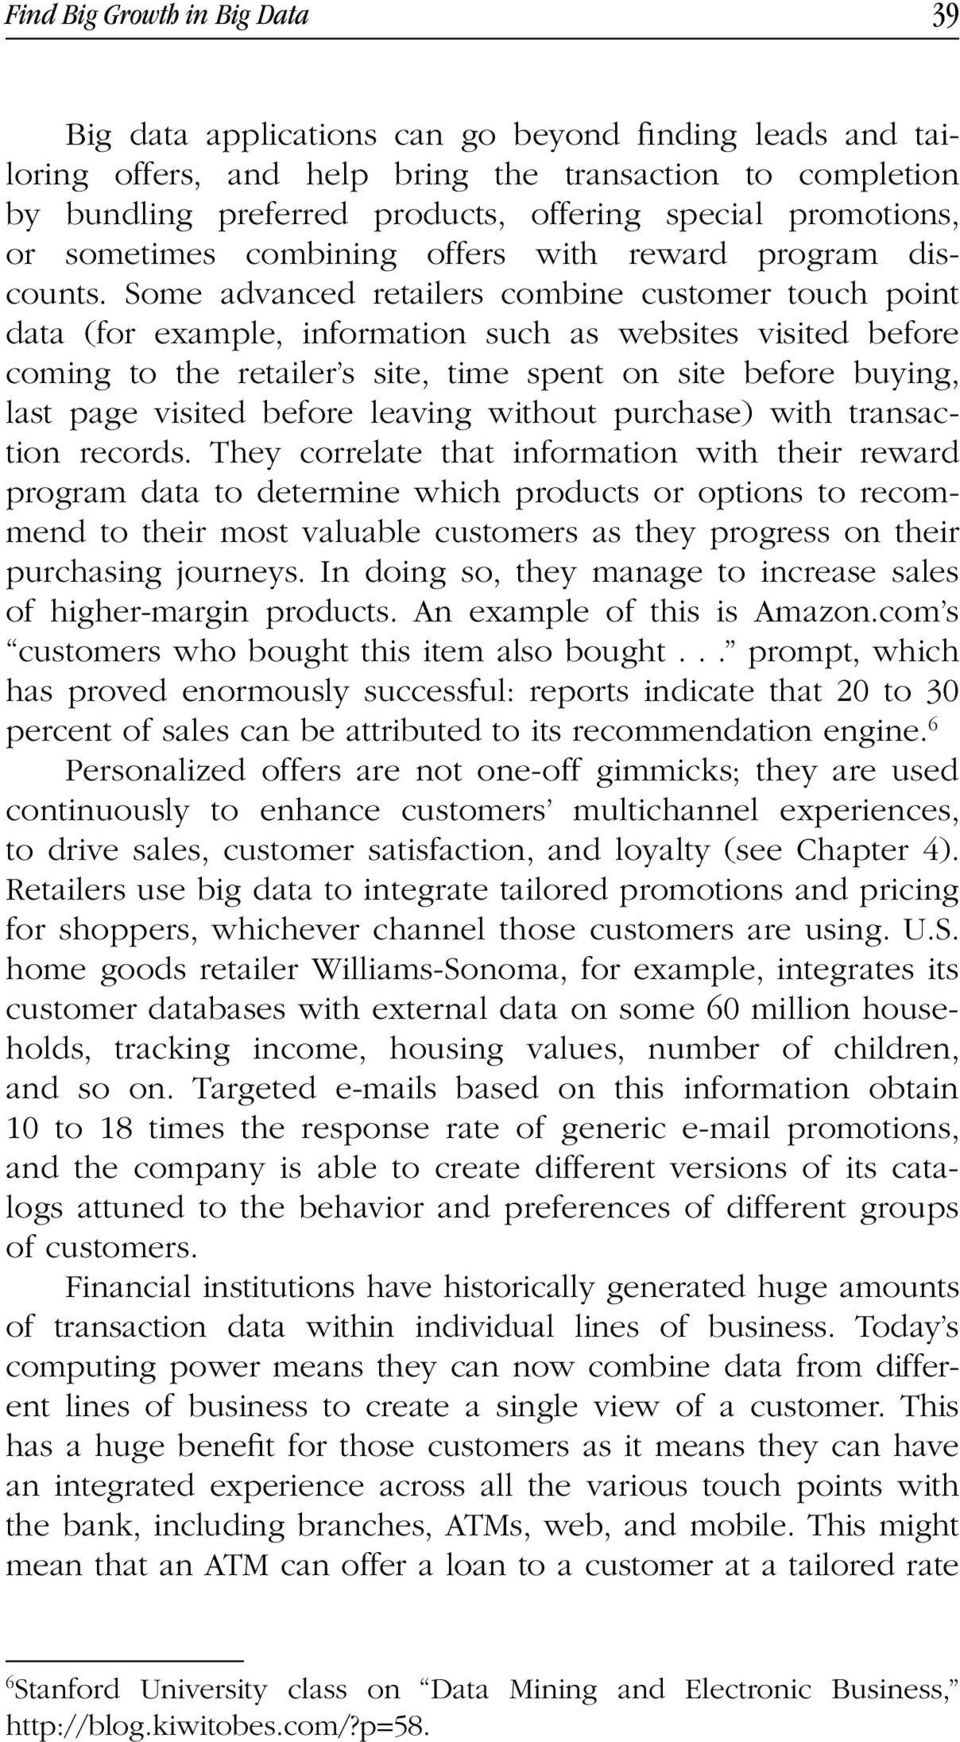 Some advanced retailers combine customer touch point data (for example, information such as websites visited before coming to the retailer s site, time spent on site before buying, last page visited